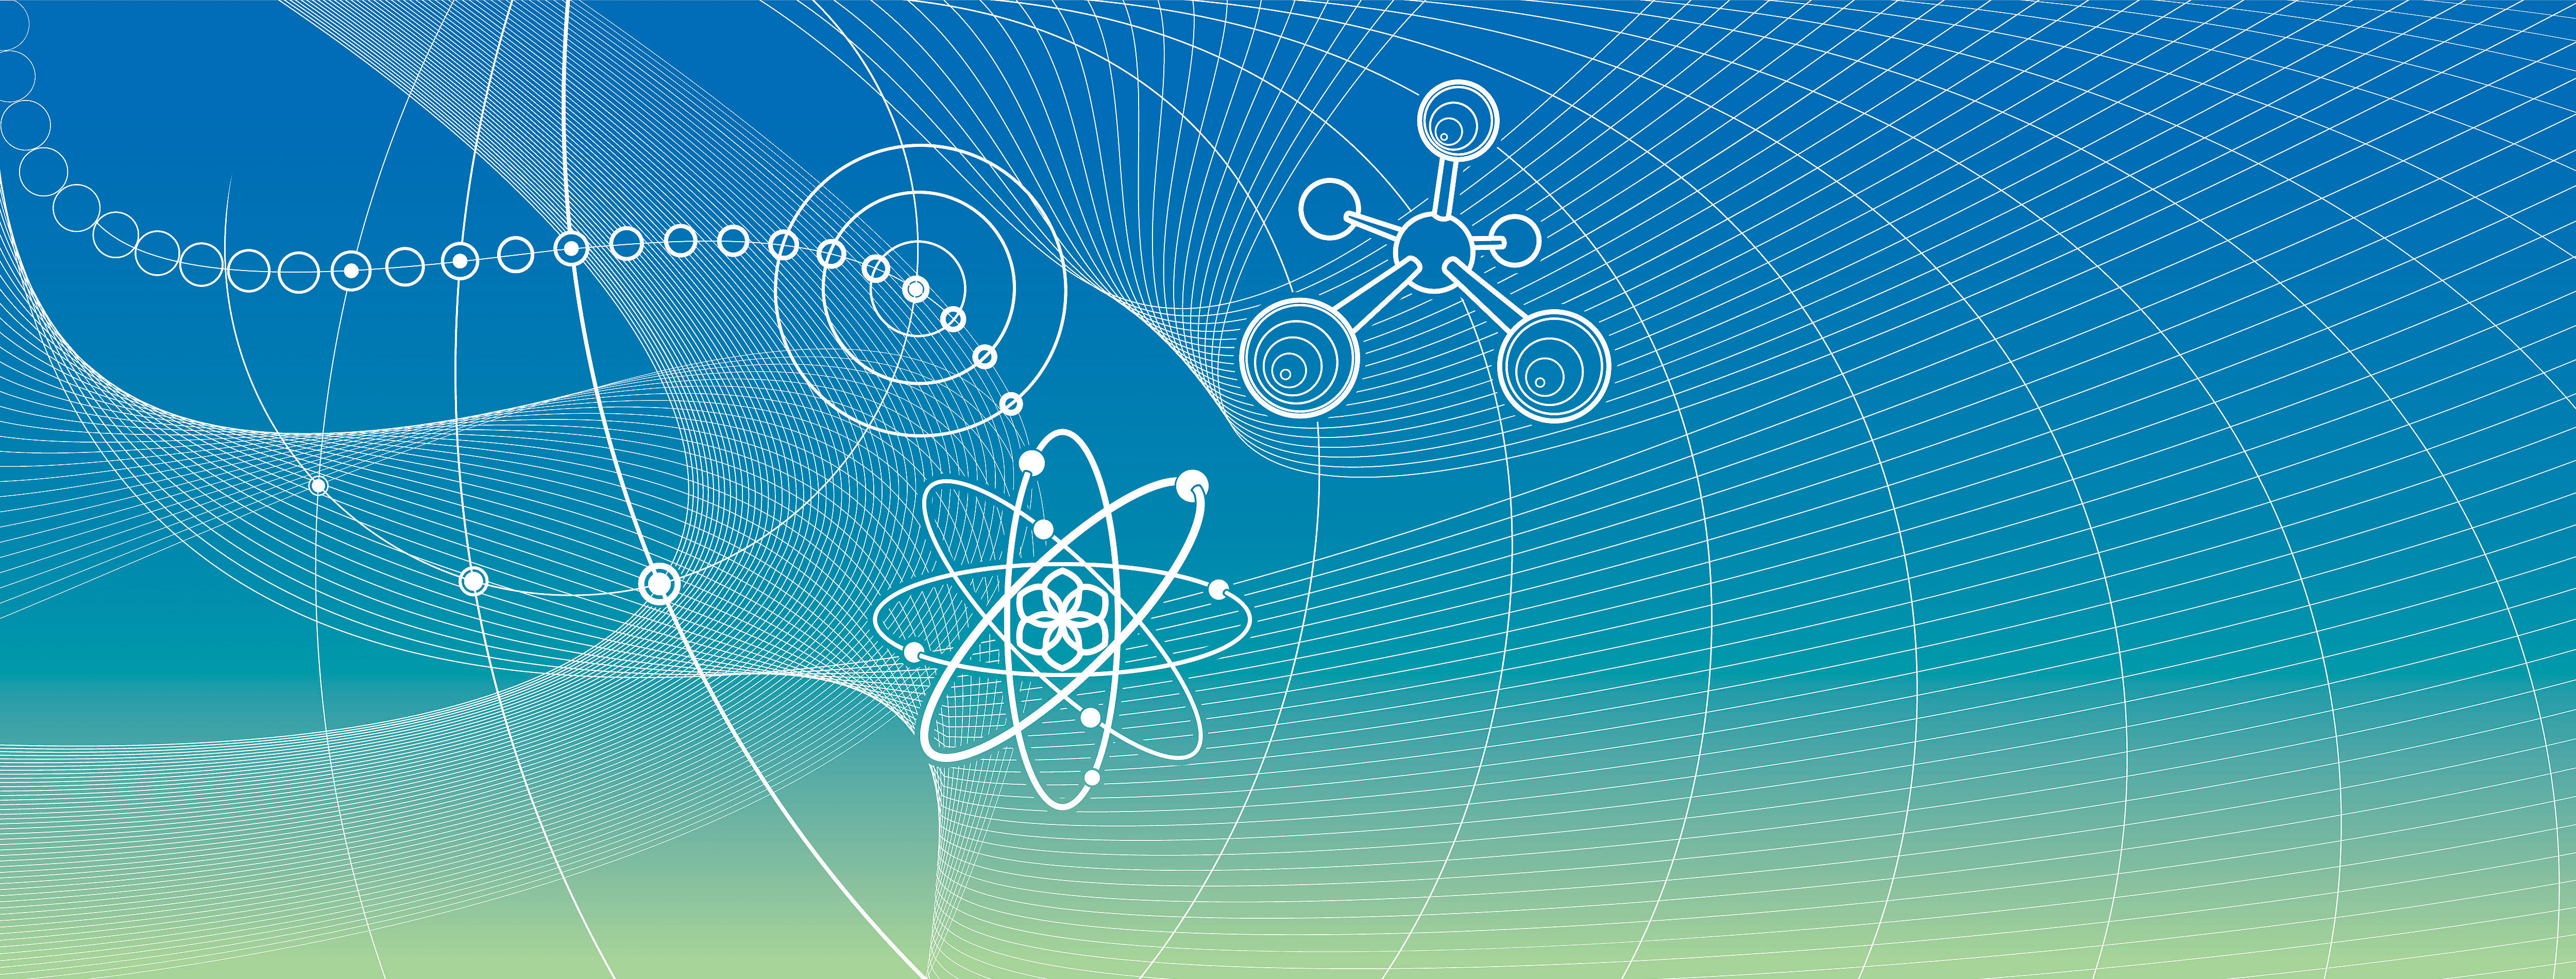 science background chemistry knowledge physics desktop wallpapers translation opportunity exchange thumbnail